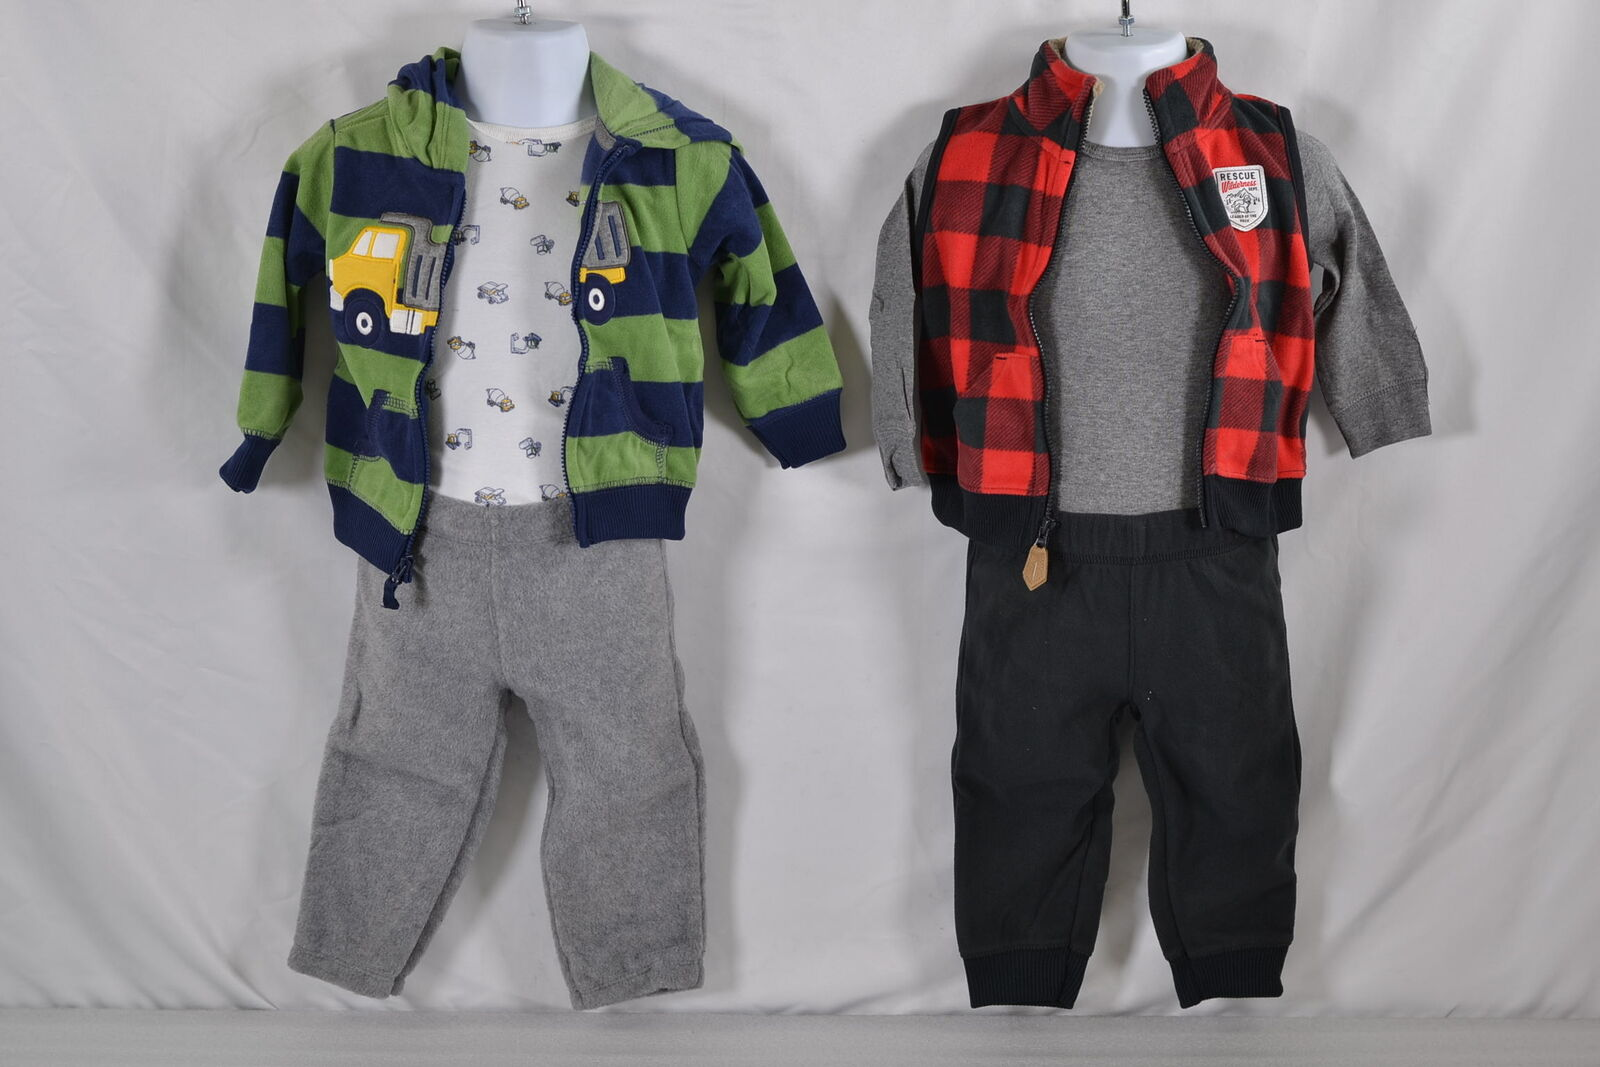 Get Wivvit Baby Boys Spanish Knit Satin Bow Romper Short Outfit Sizes from Newborn to 9 Months